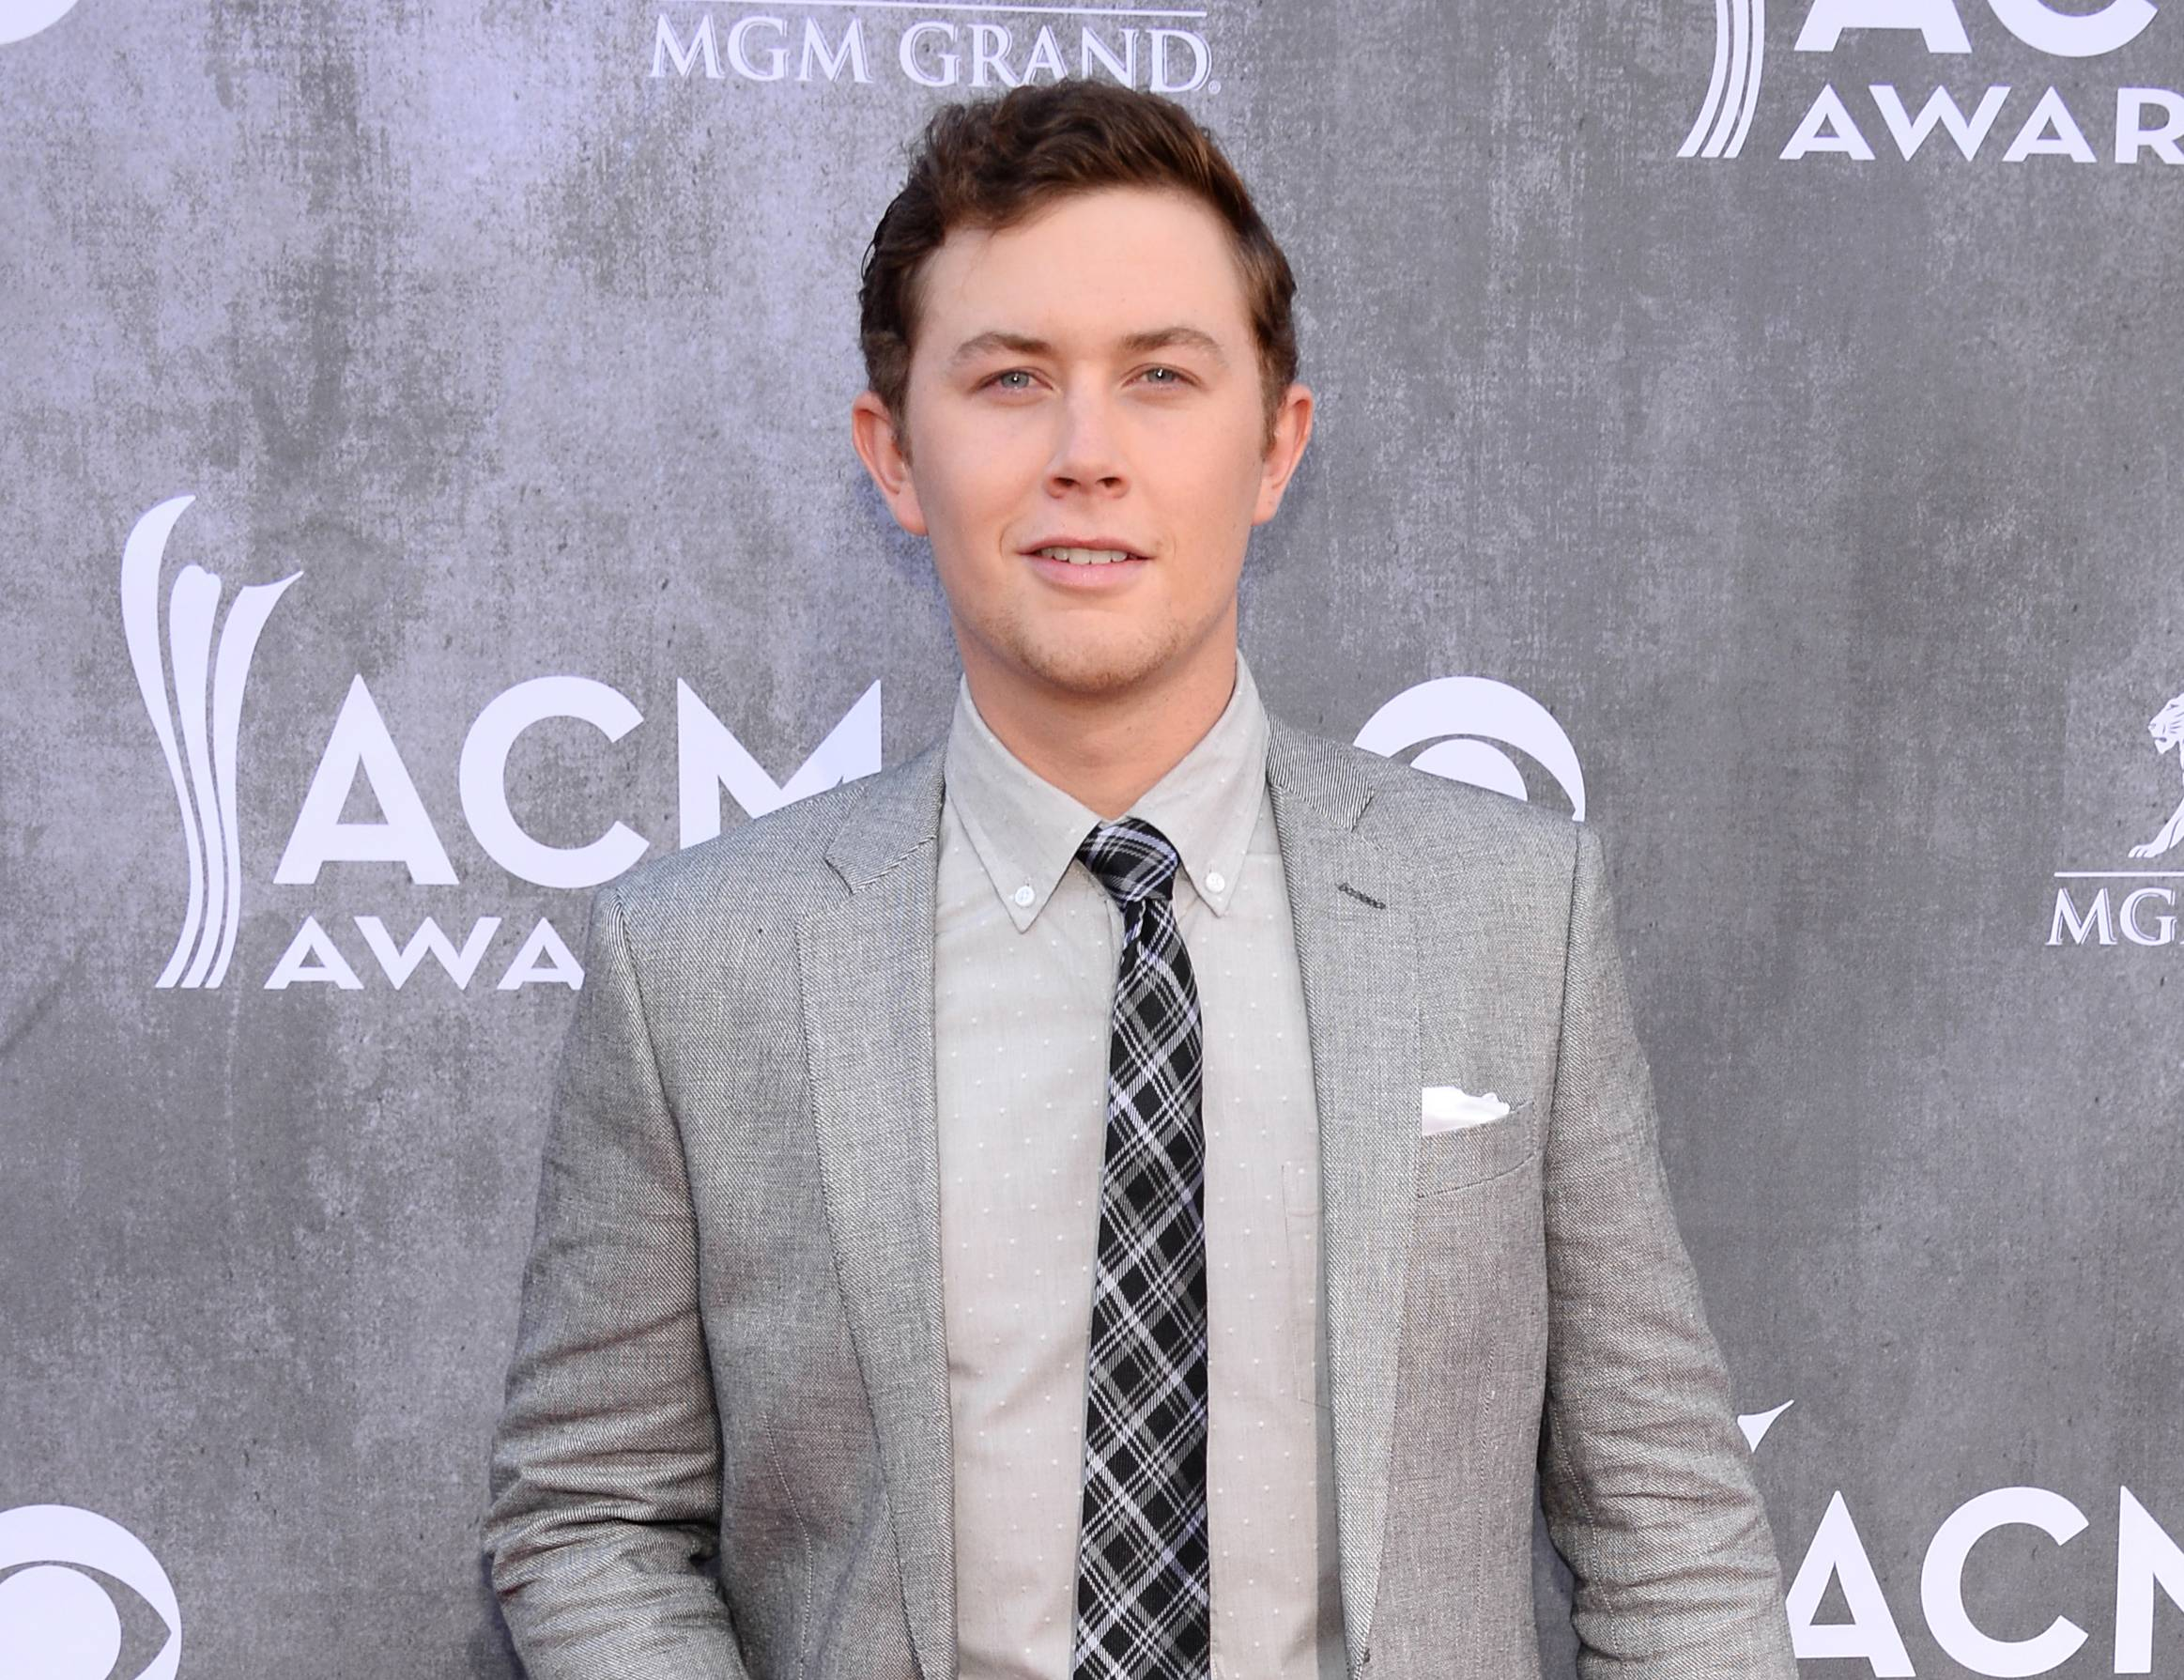 Police say Scotty McCreery was the victim of an early morning home invasion near the campus of North Carolina State University, where he is a student. Raleigh Police spokesman Jim Sughrue says officers were called shortly before 2 a.m. Monday, May 5, to an apartment about a mile from campus.